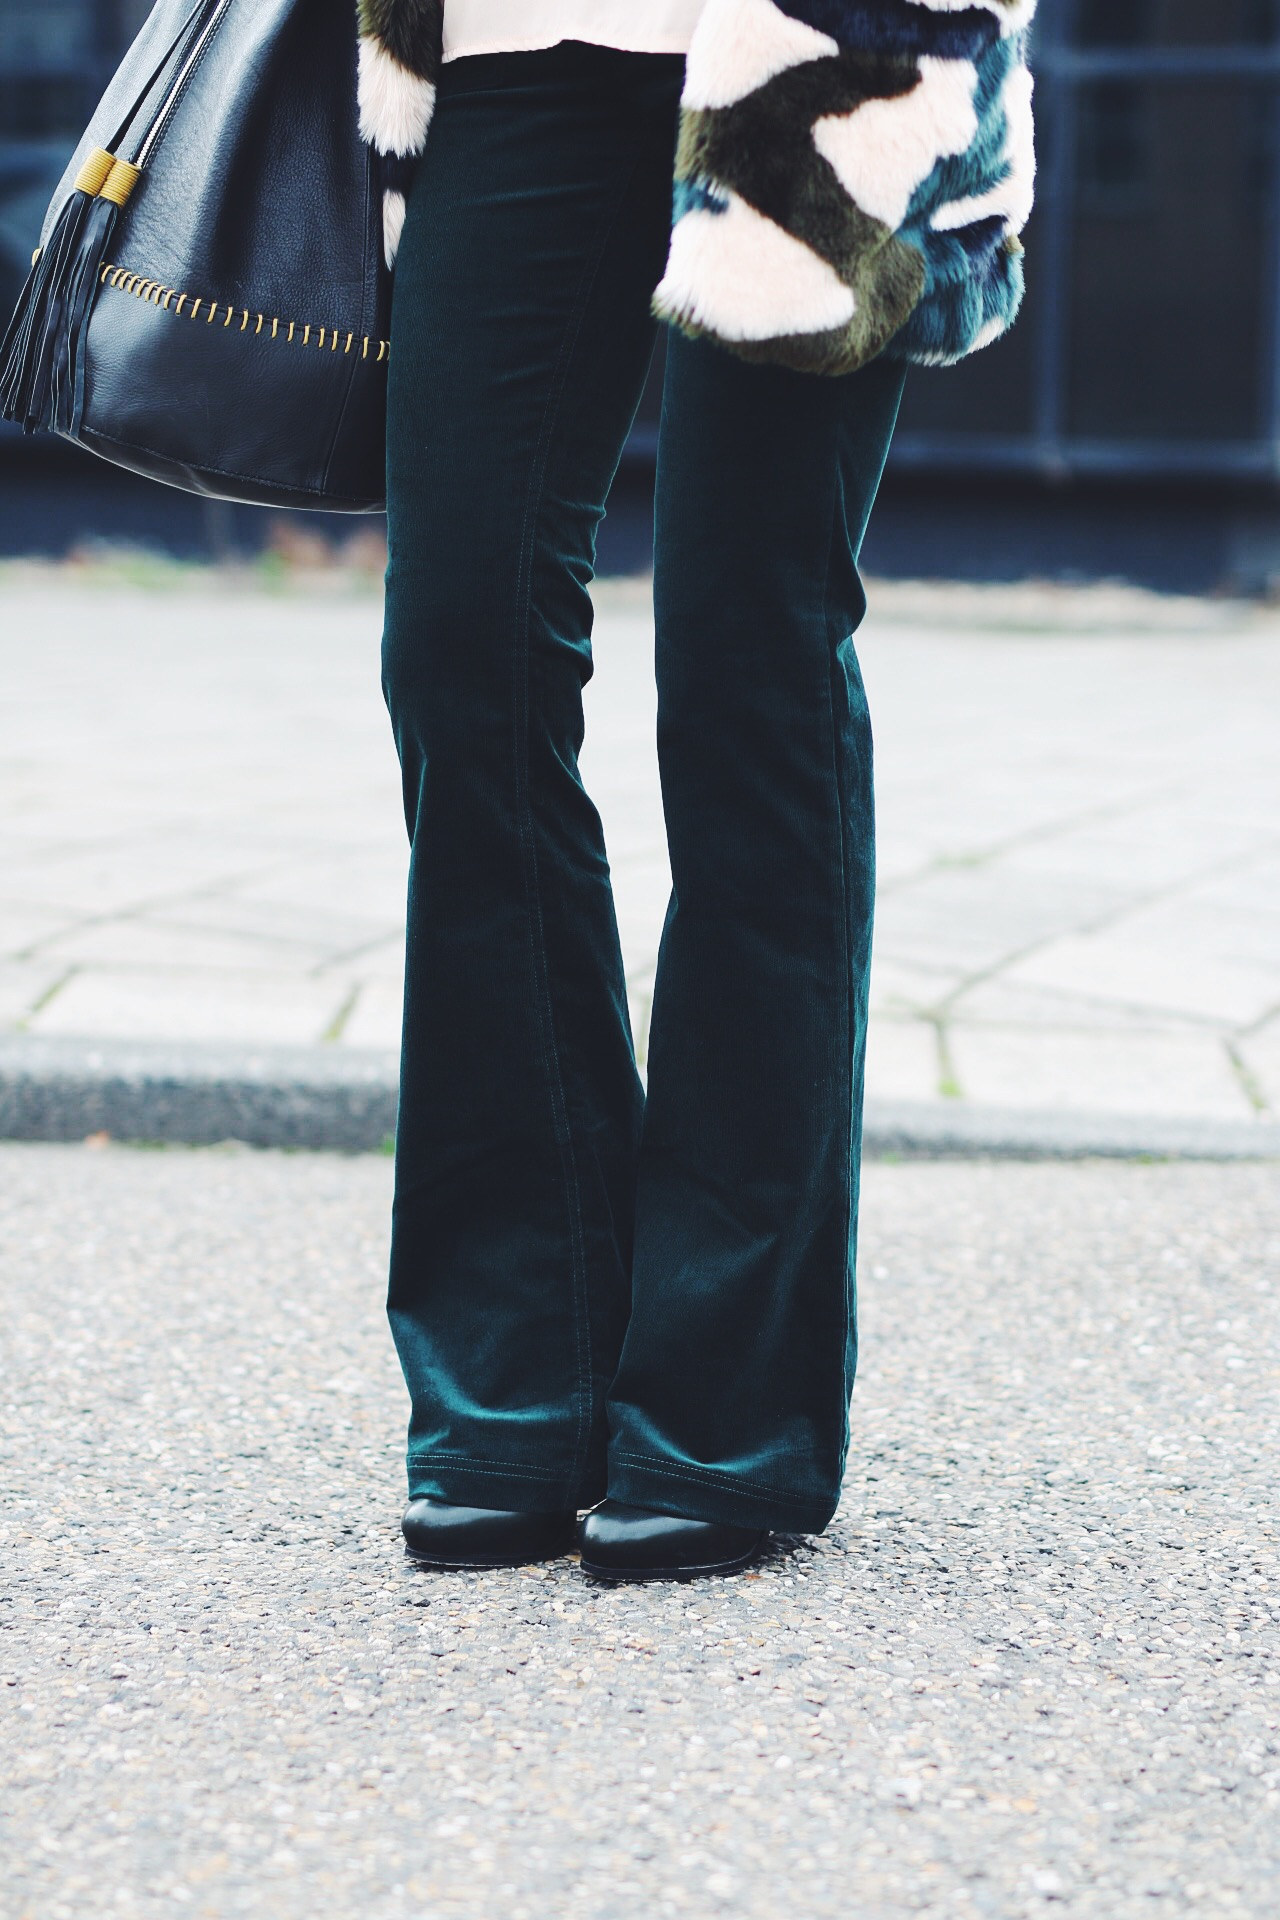 Bag at You - Fashion blog - Look Amayzine - Zara Flares and Tiffi pumps